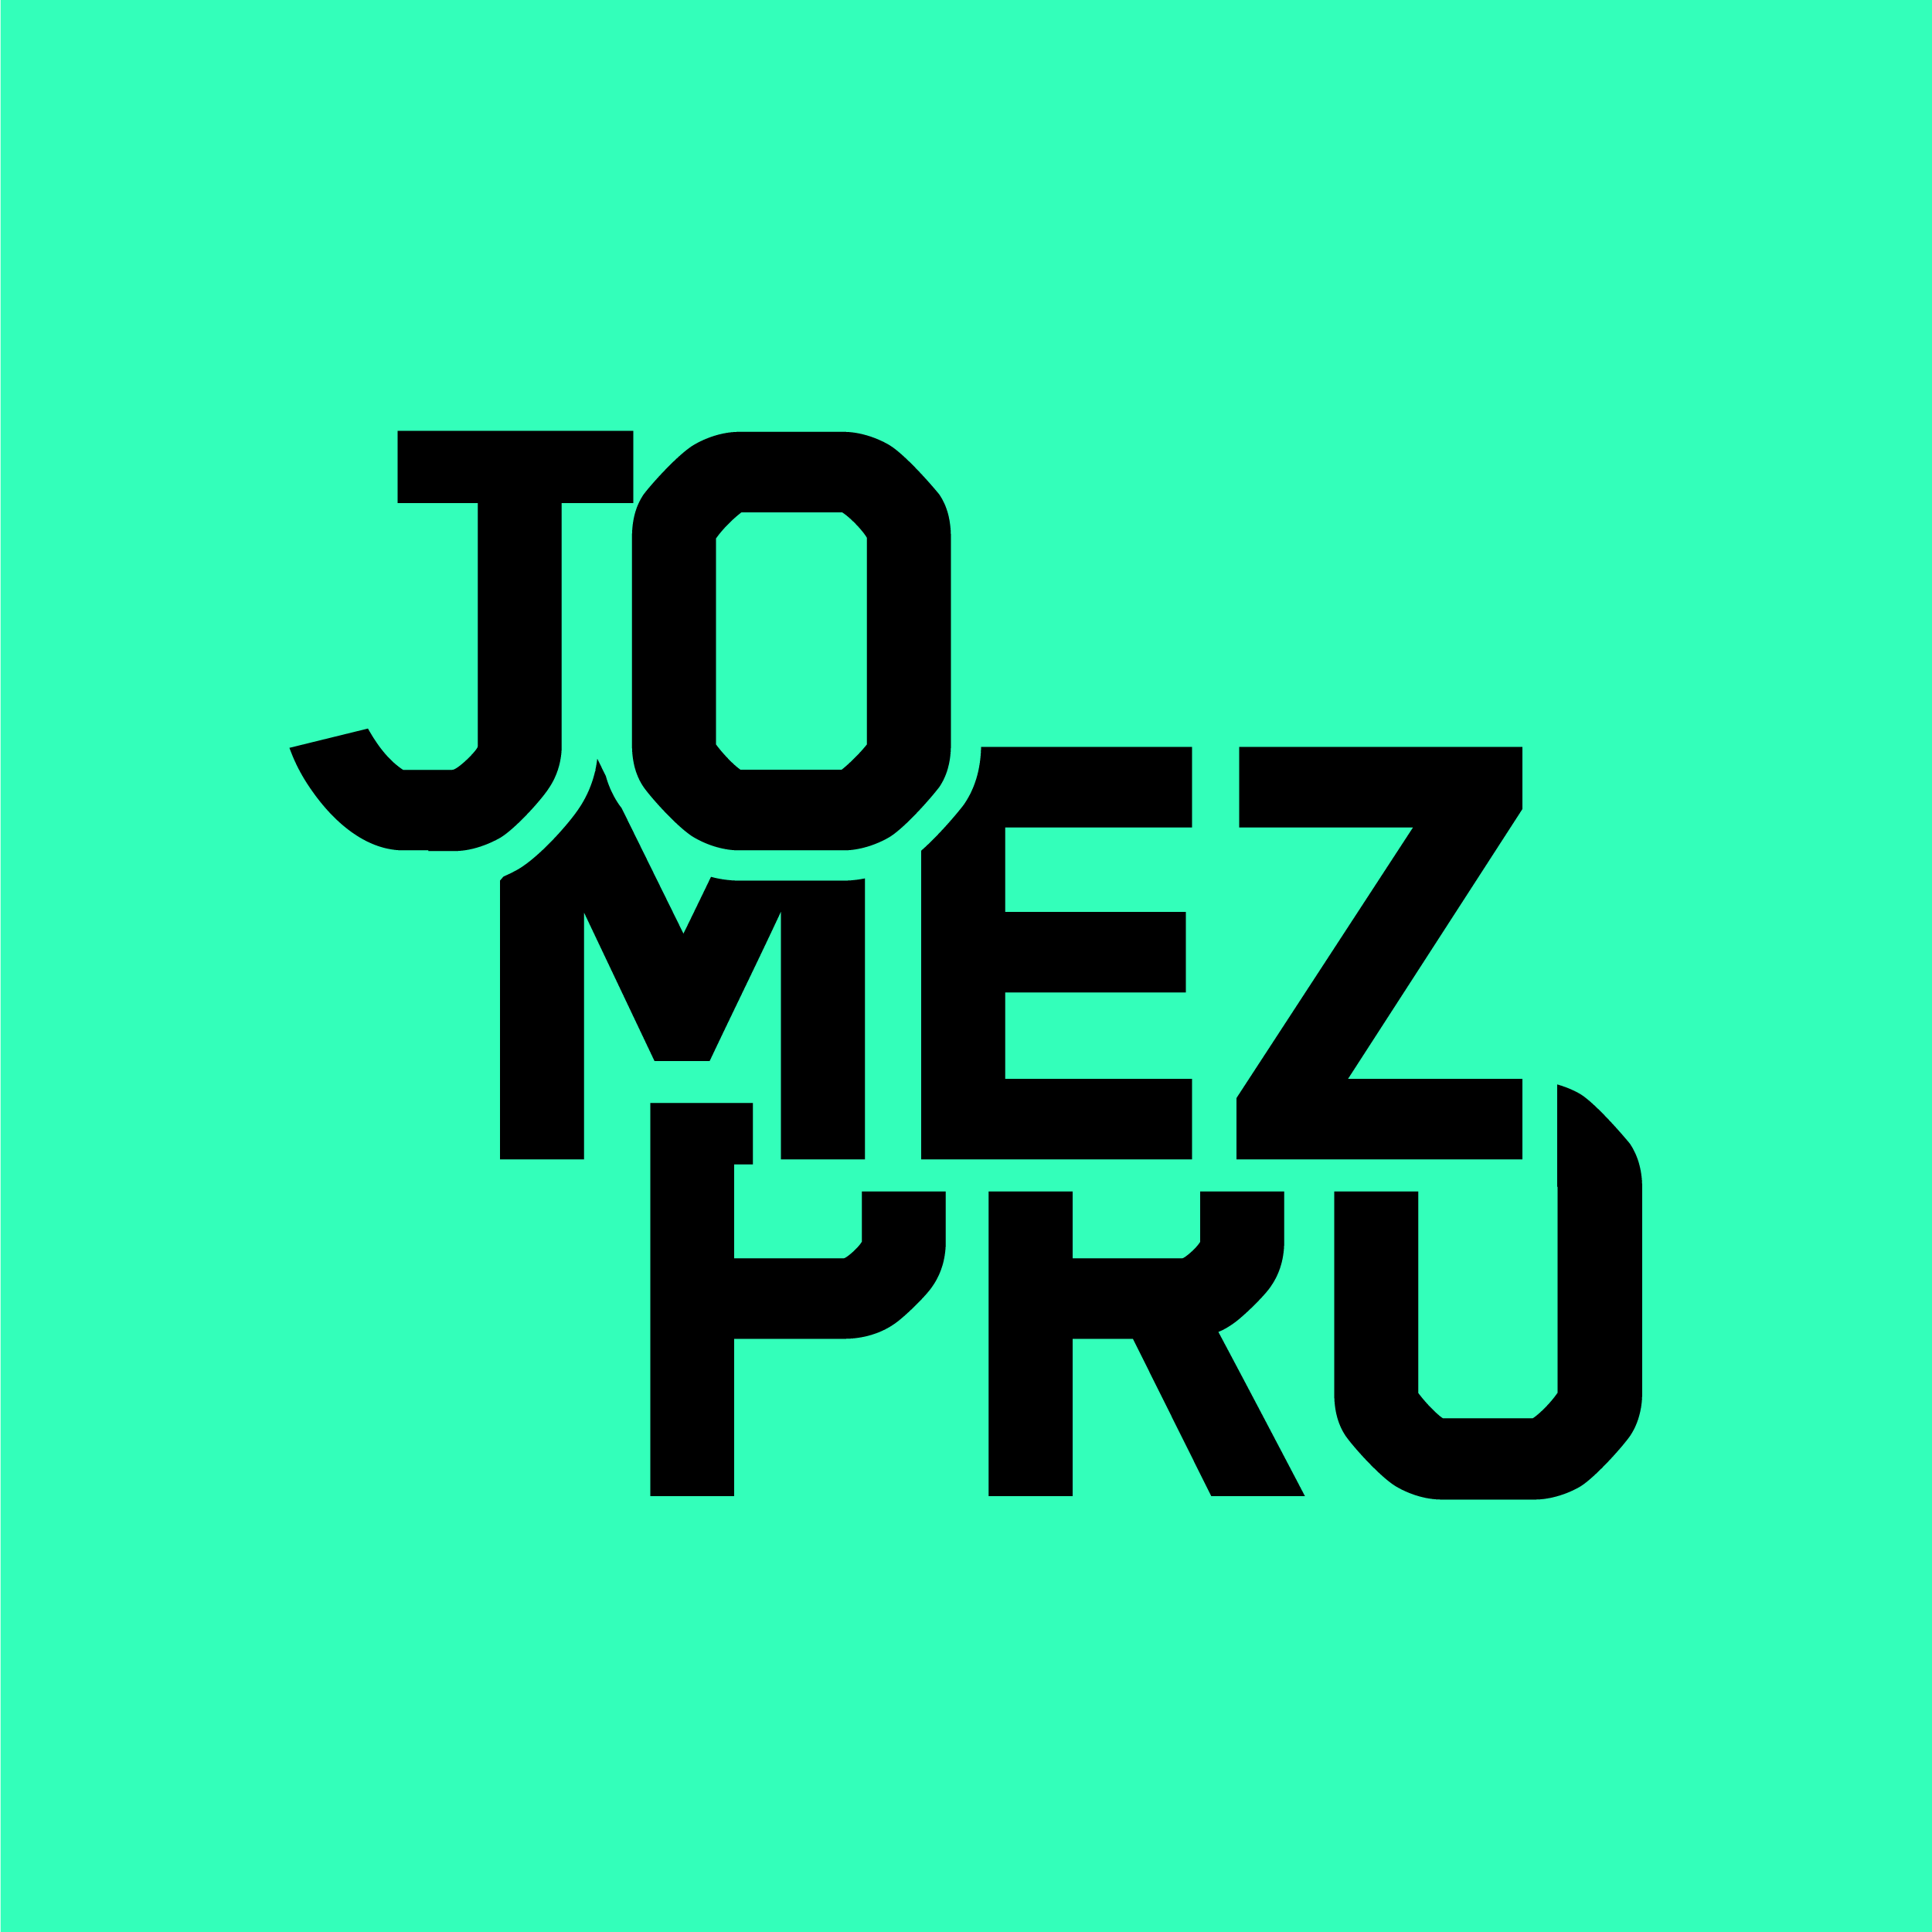 01-jomezpro-logo-primary-color-2020.png